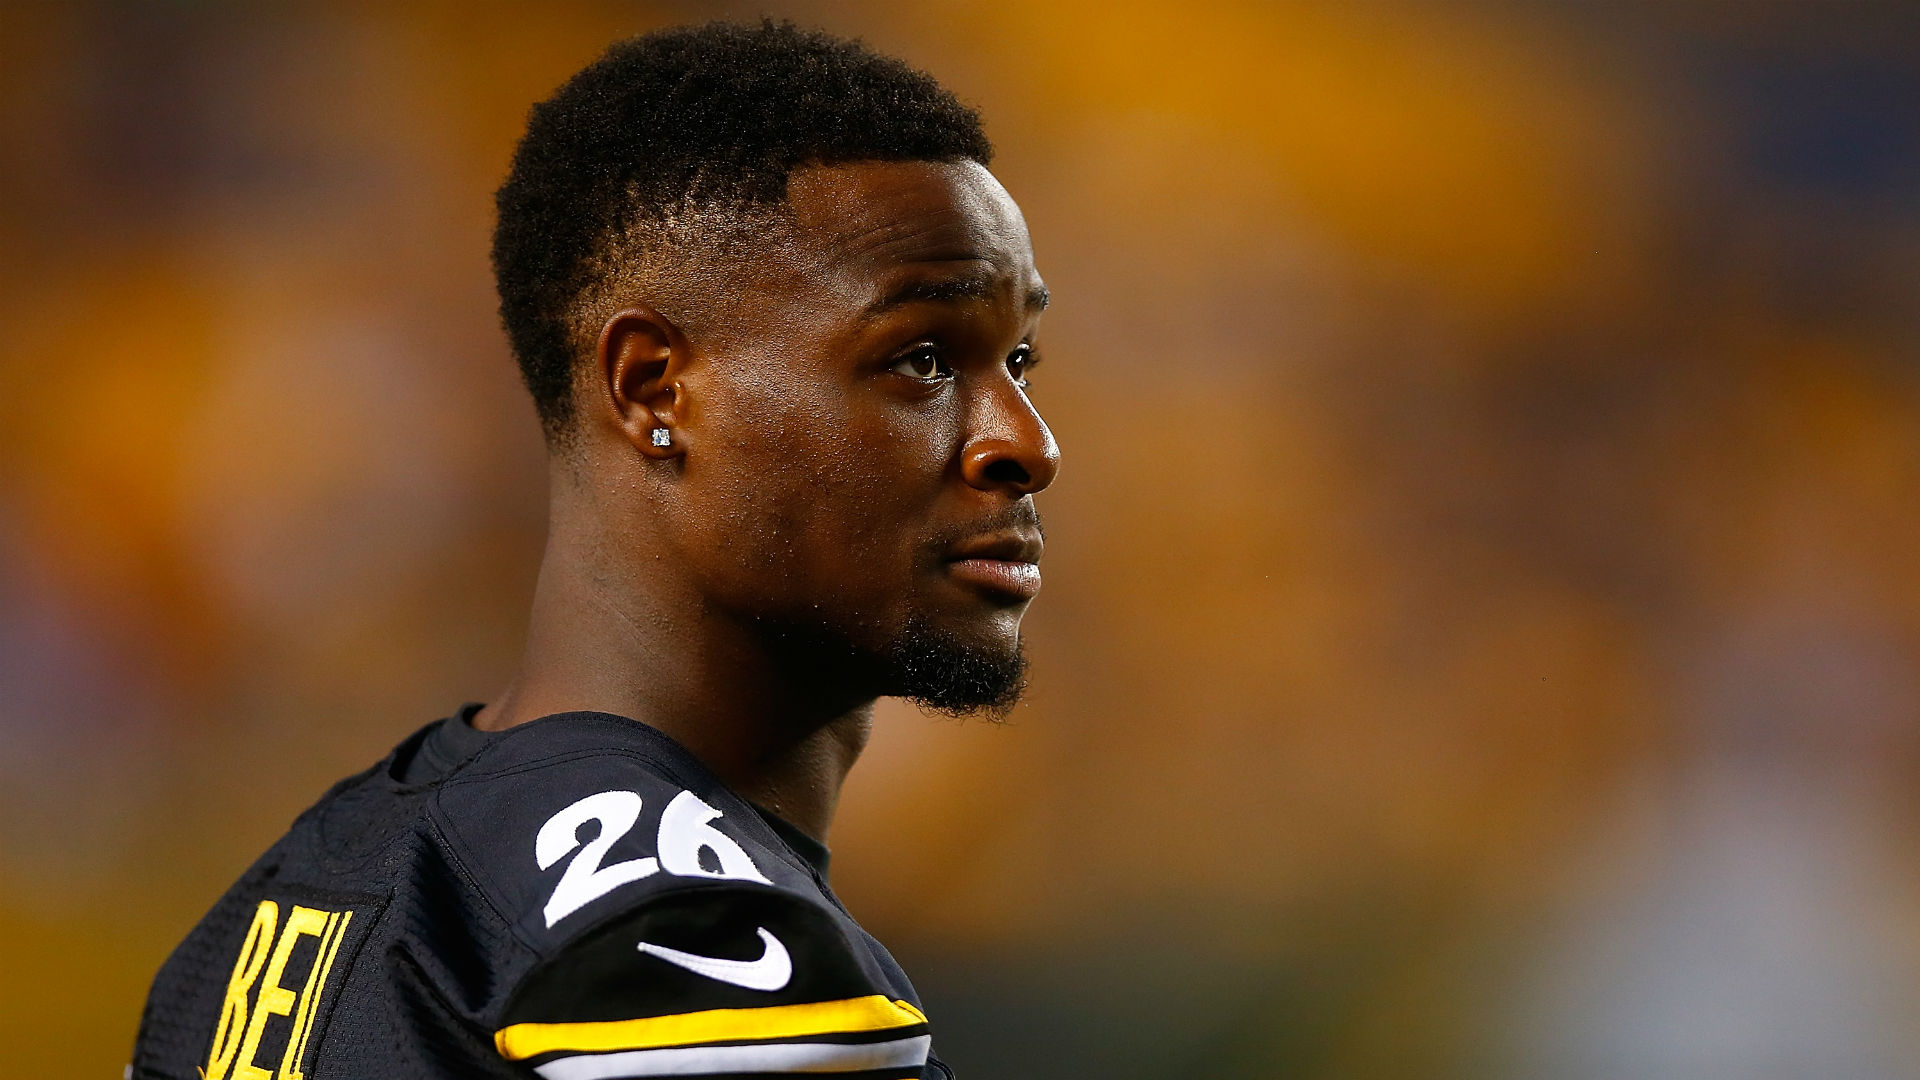 In gambling on himself, Steelers' Le'Veon Bell made a ...